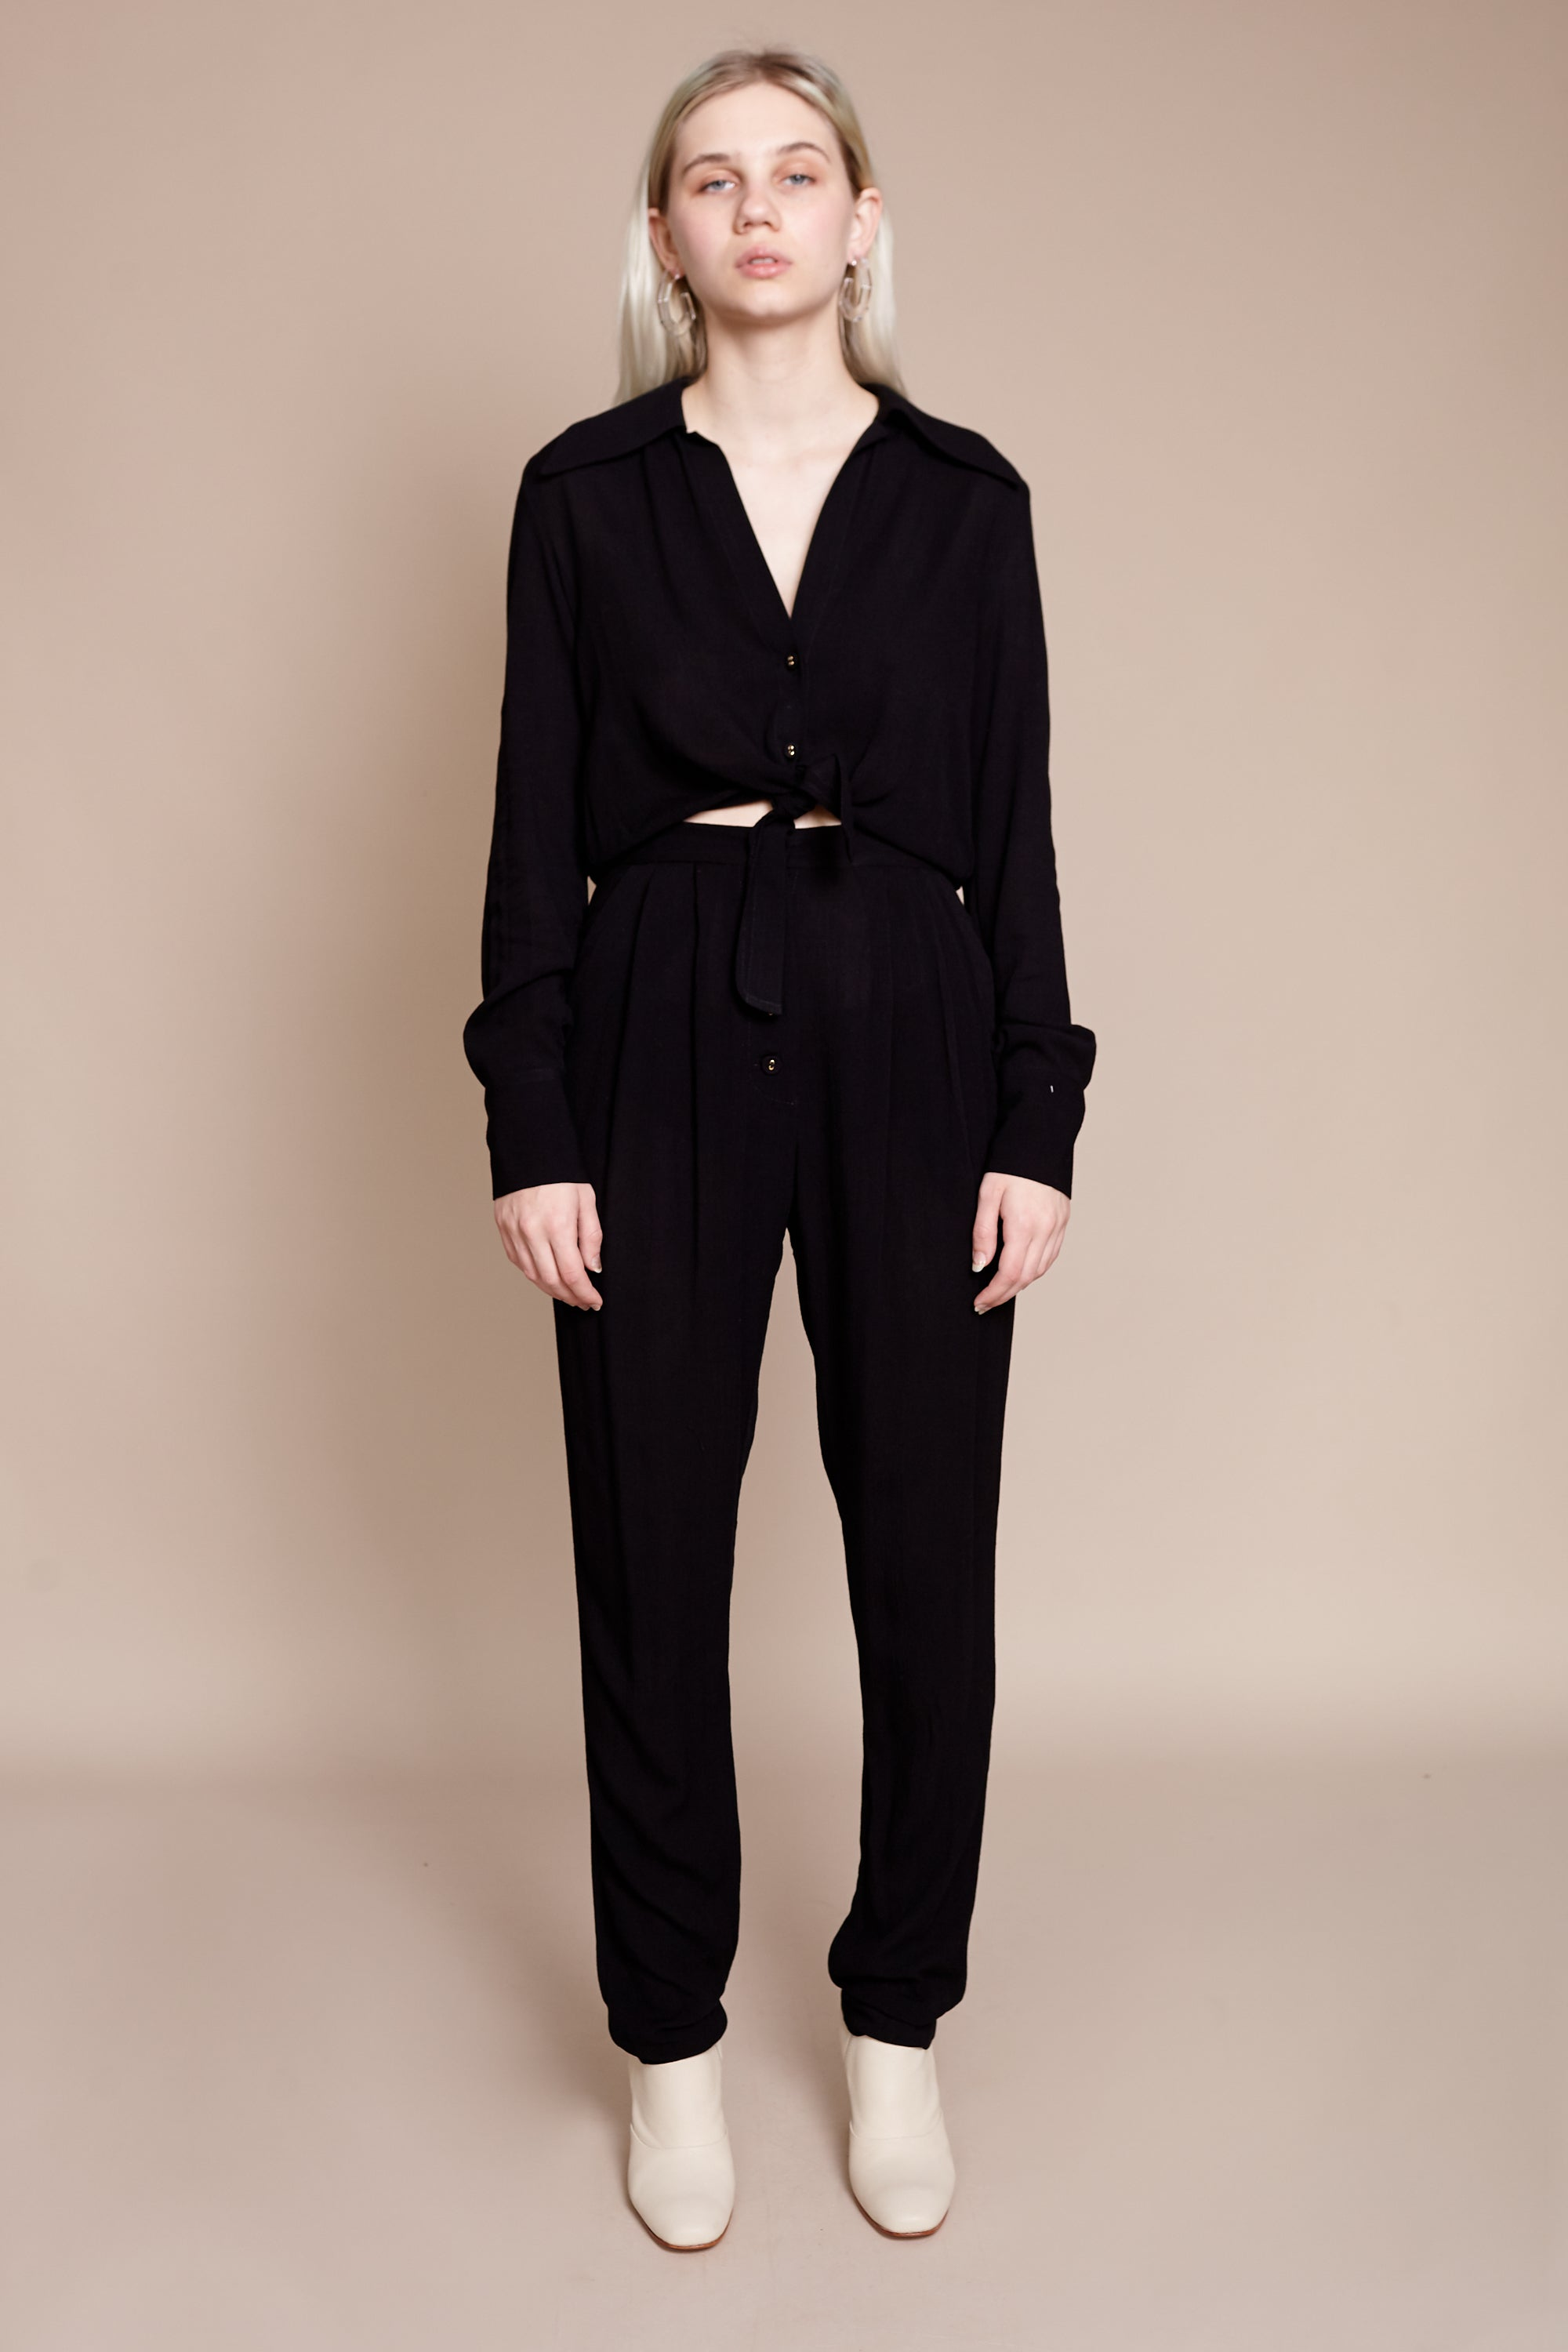 Rachel Comey Luana Jumpsuit in Black - Vert & Vogue